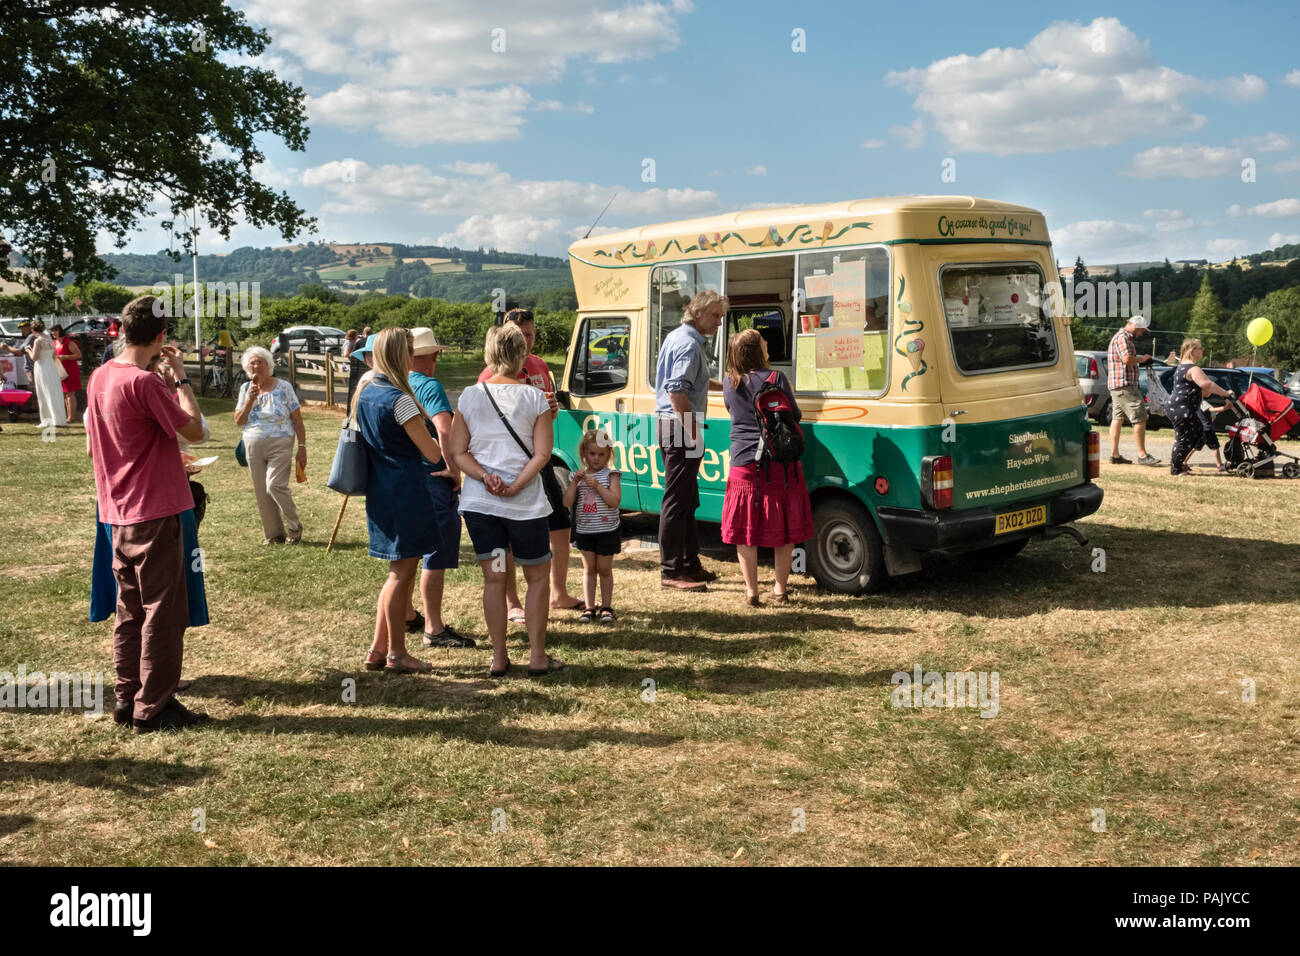 Presteigne, Powys, UK. A queue for ice creams at the local carnival during the heatwave of 2018 - Stock Image